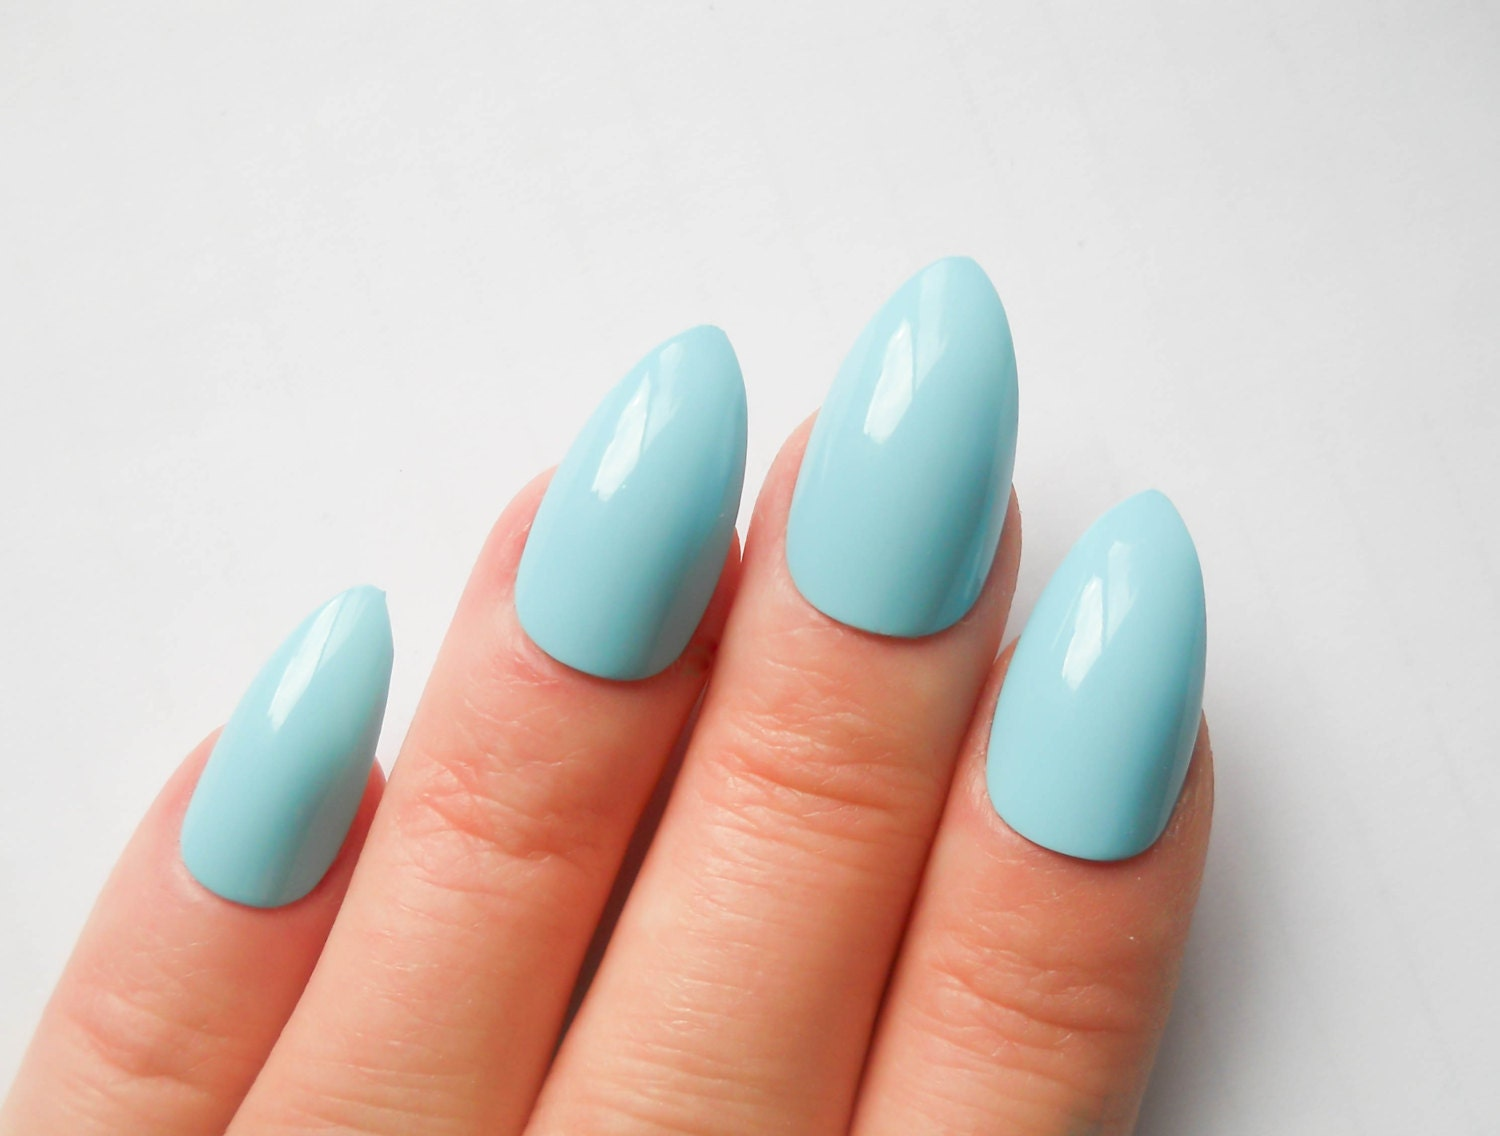 Baby Blue Nails / Fake Nails / Stiletto Nails / Press on Nails